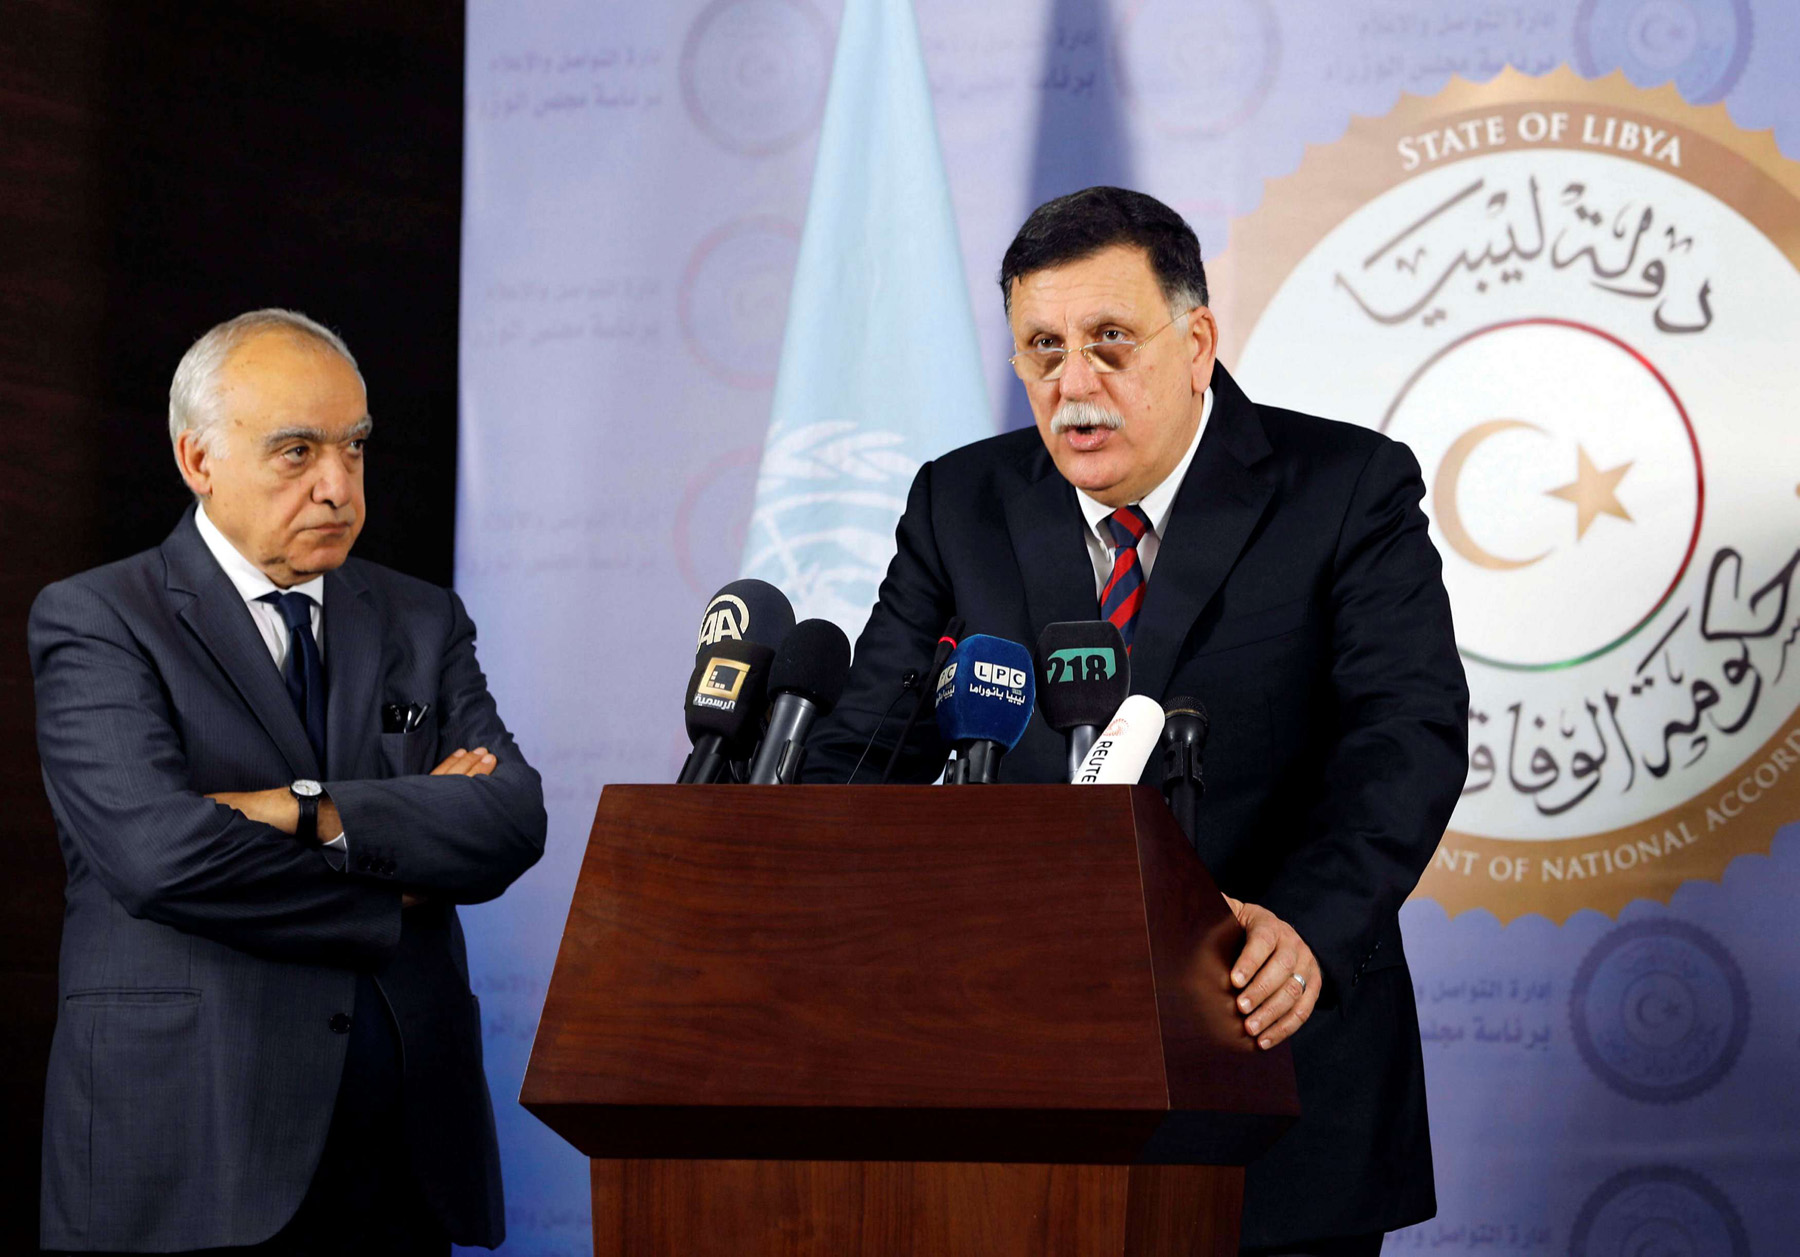 Bumpy road. Head of Libyan Presidency Council Fayez al-Sarraj (R) speaks during a news conference with UN Envoy to Libya Ghassan Salame in Tripoli. 				                             (Reuters)